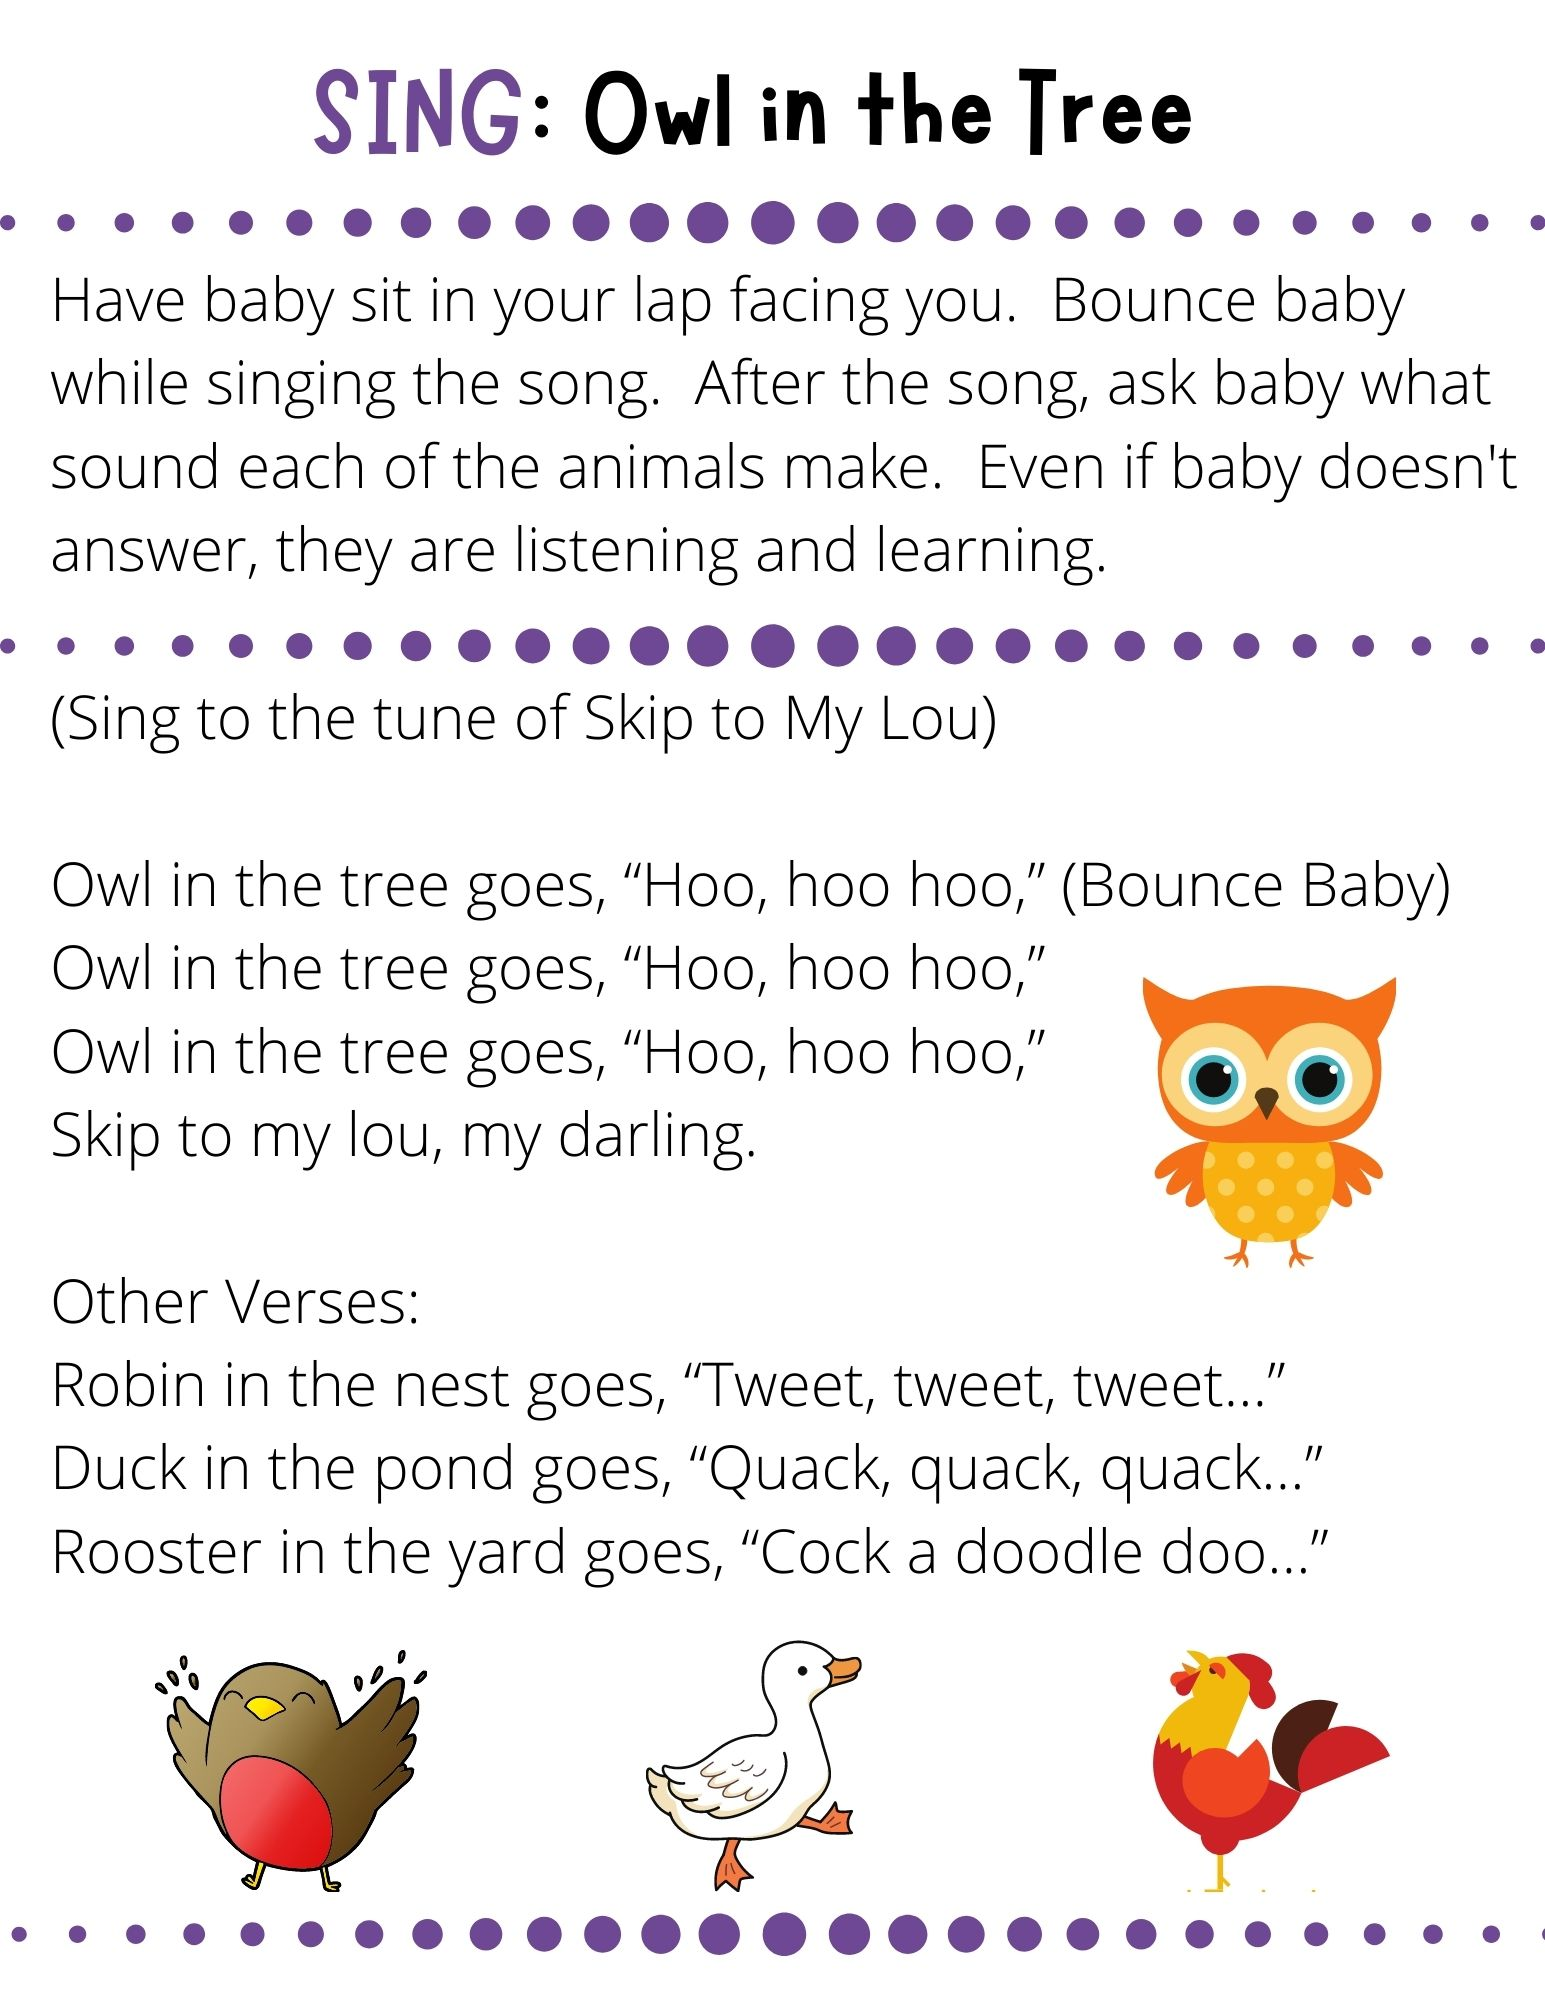 """(Sing to the tune of Skip to My Lou)  Owl in the tree goes, """"Hoo, hoo hoo,"""" (Bounce Baby) Owl in the tree goes, """"Hoo, hoo hoo,"""" Owl in the tree goes, """"Hoo, hoo hoo,"""" Skip to my lou, my darling.  Other Verses: Robin in the nest goes, """"Tweet, tweet, tweet…"""" Duck in the pond goes, """"Quack, quack, quack…"""" Rooster in the yard goes, """"Cock a doodle doo…"""""""